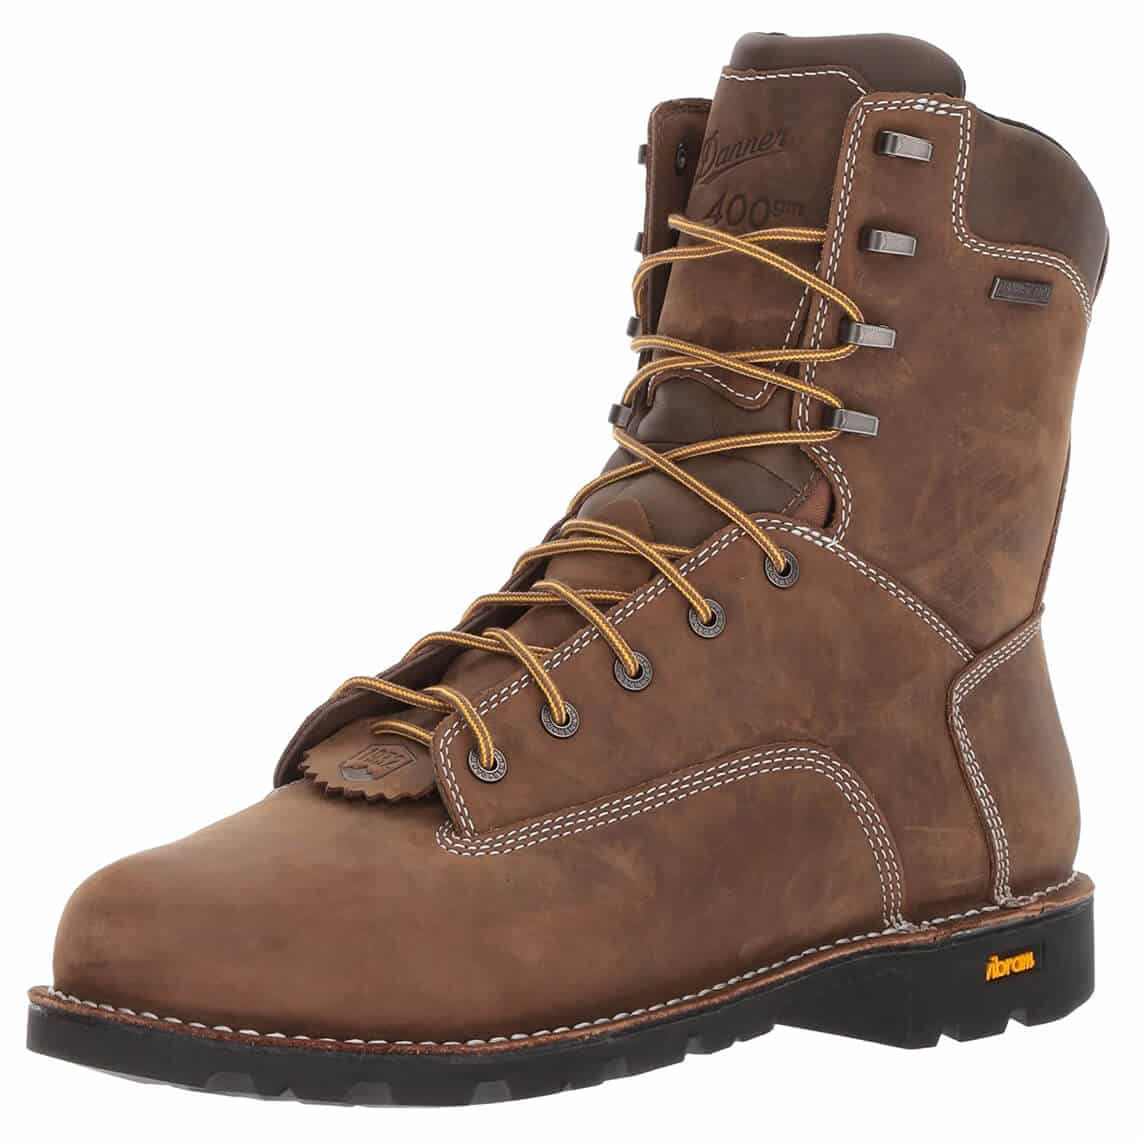 Danner Men's Gritstone Insulated 400G Work Boots